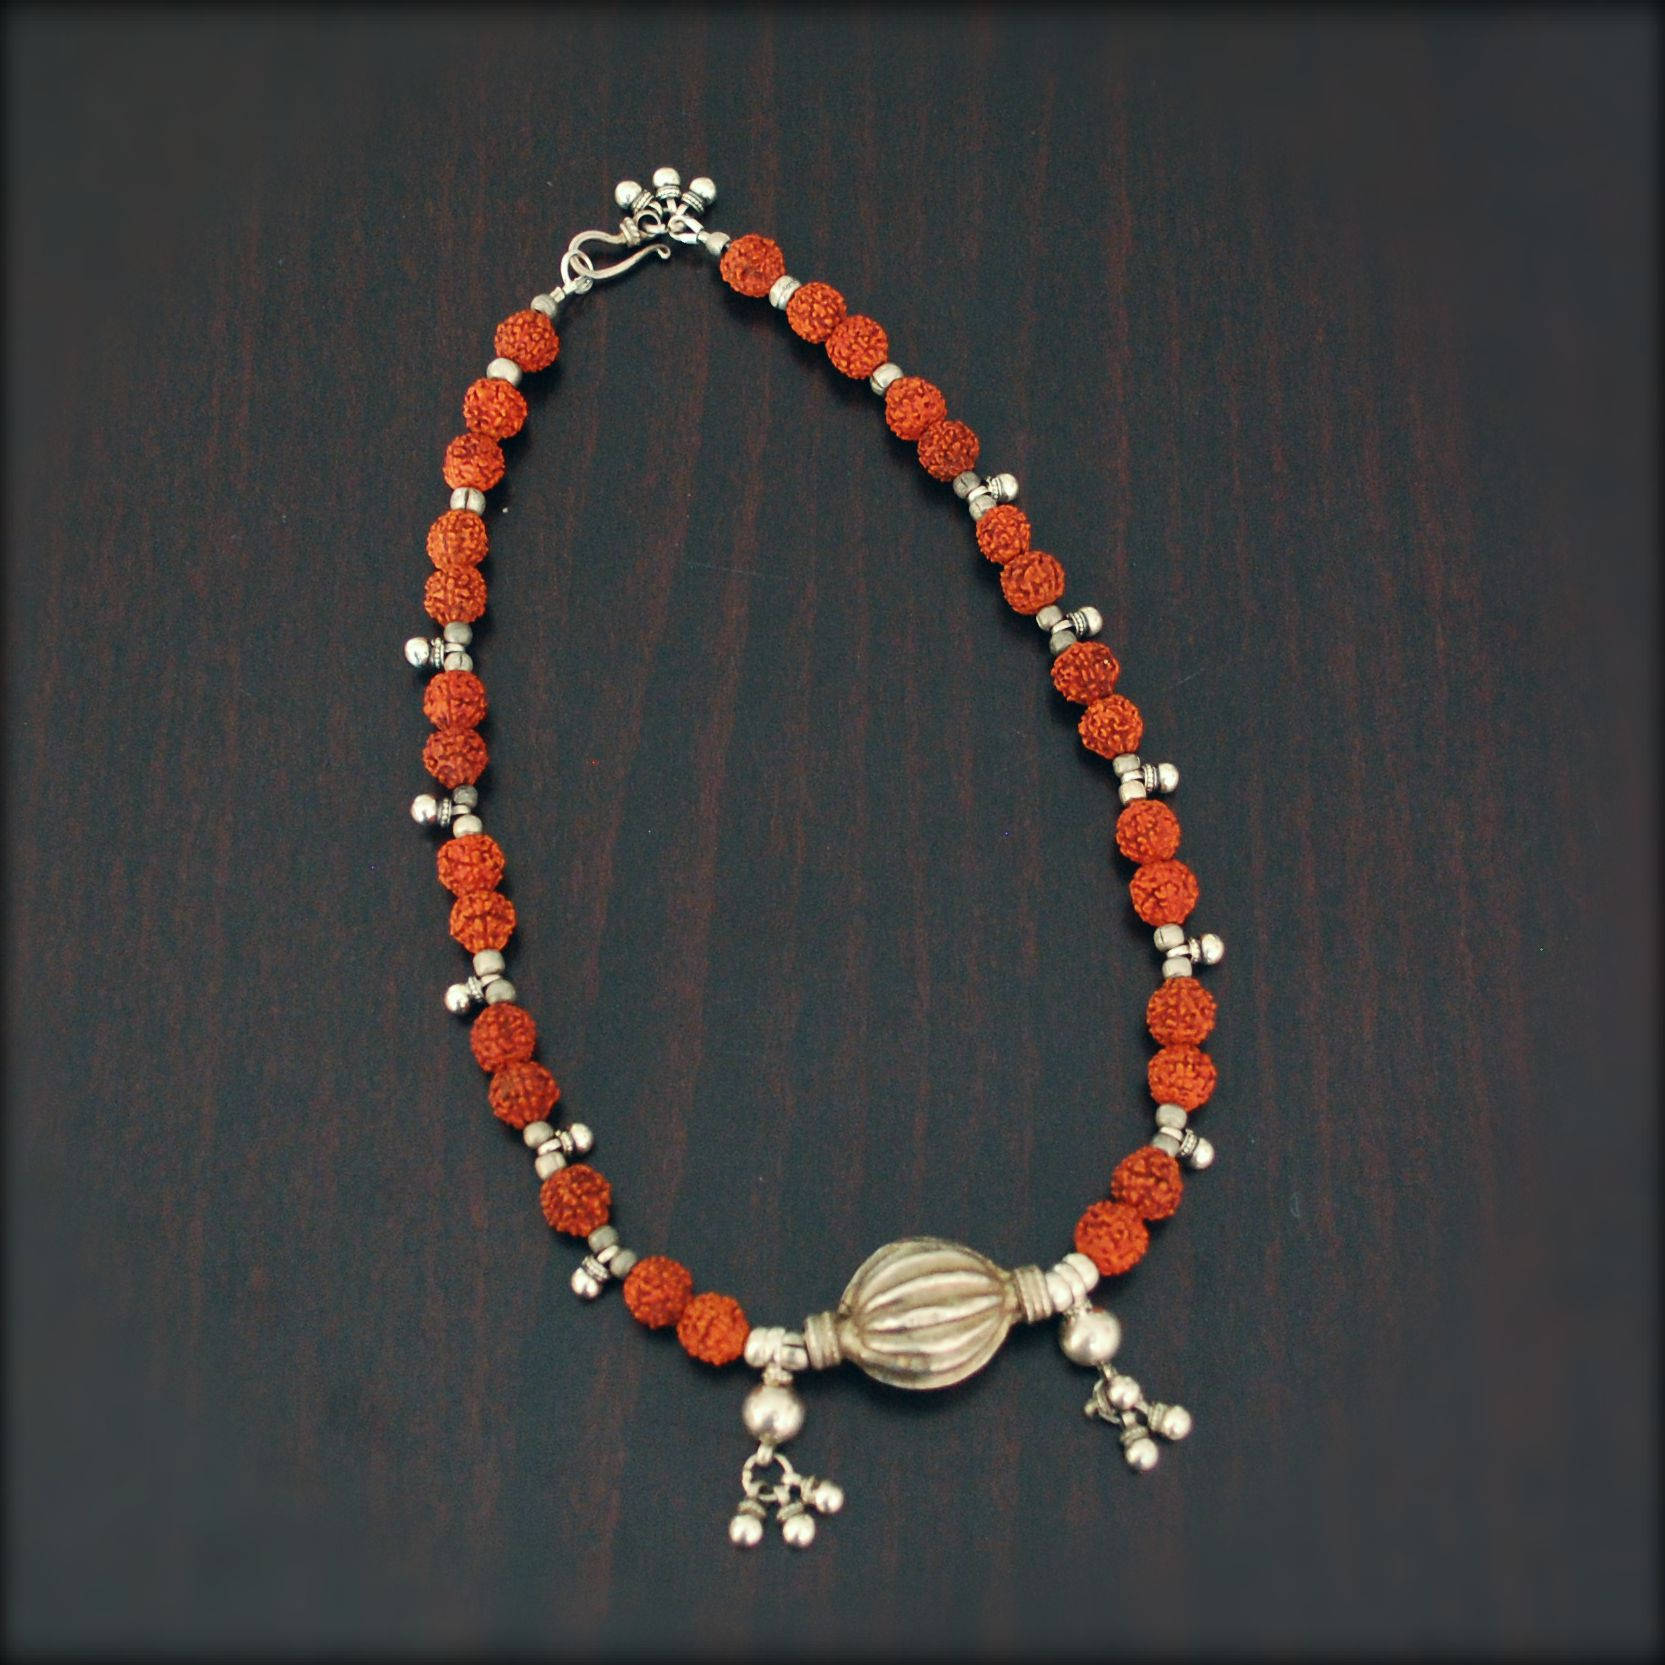 Rudraksha Antique Rajasthan Silver Beads Choker Necklace - Rudraksha Necklace - Rajasthan Silver Necklace